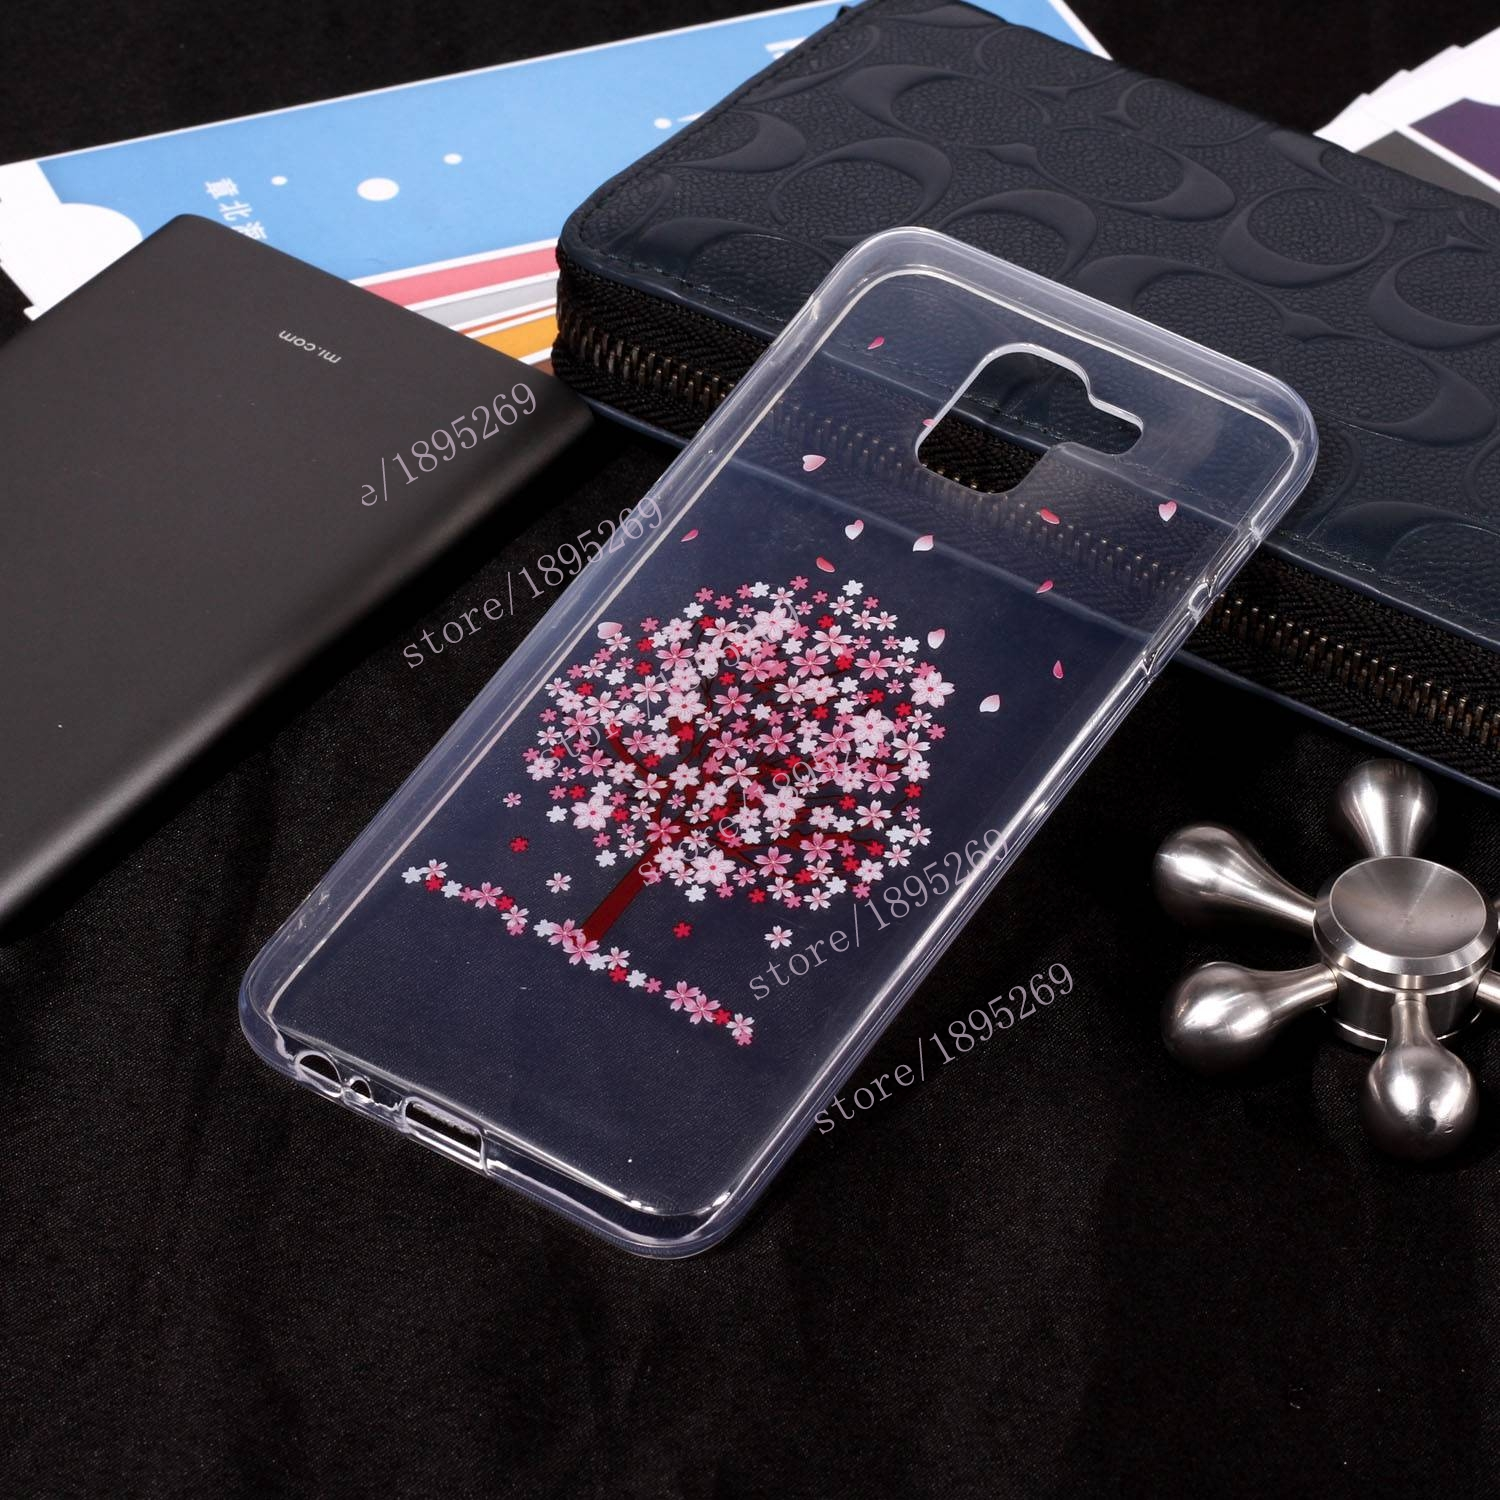 Aliexpress Buy TPU Case for Samsung Galaxy J6 2018 J600 J600F J600F DS J600FN Painting Phone Case SM J600F SM J600FN Soft Silicone Phone Cover from